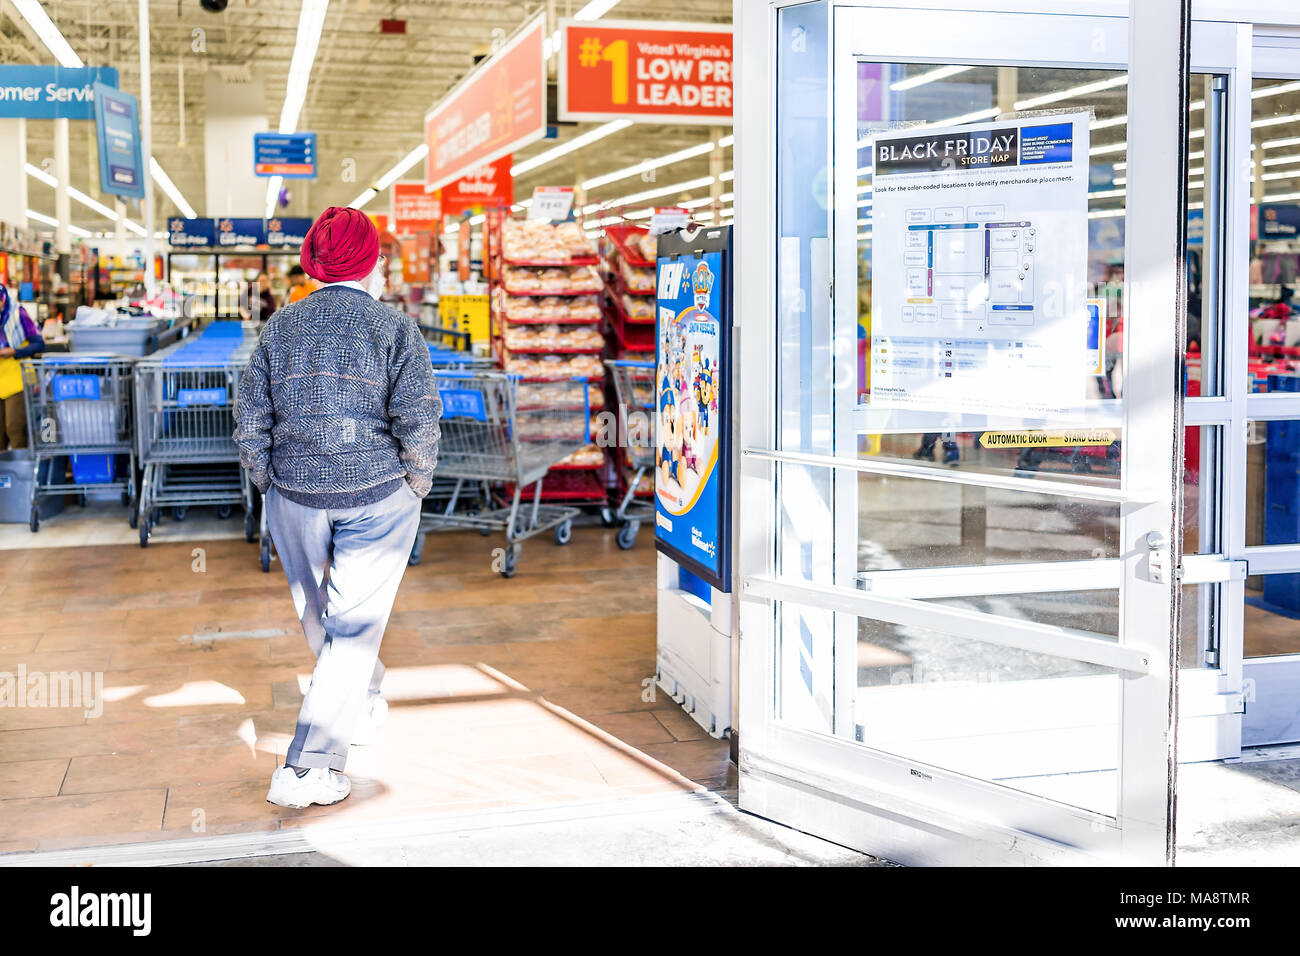 Burke Usa November 24 2017 Black Friday Sign In Walmart Store Entrance With Map After Thanksgiving Shopping Consumerism In Virginia With Sikh Man Stock Photo Alamy